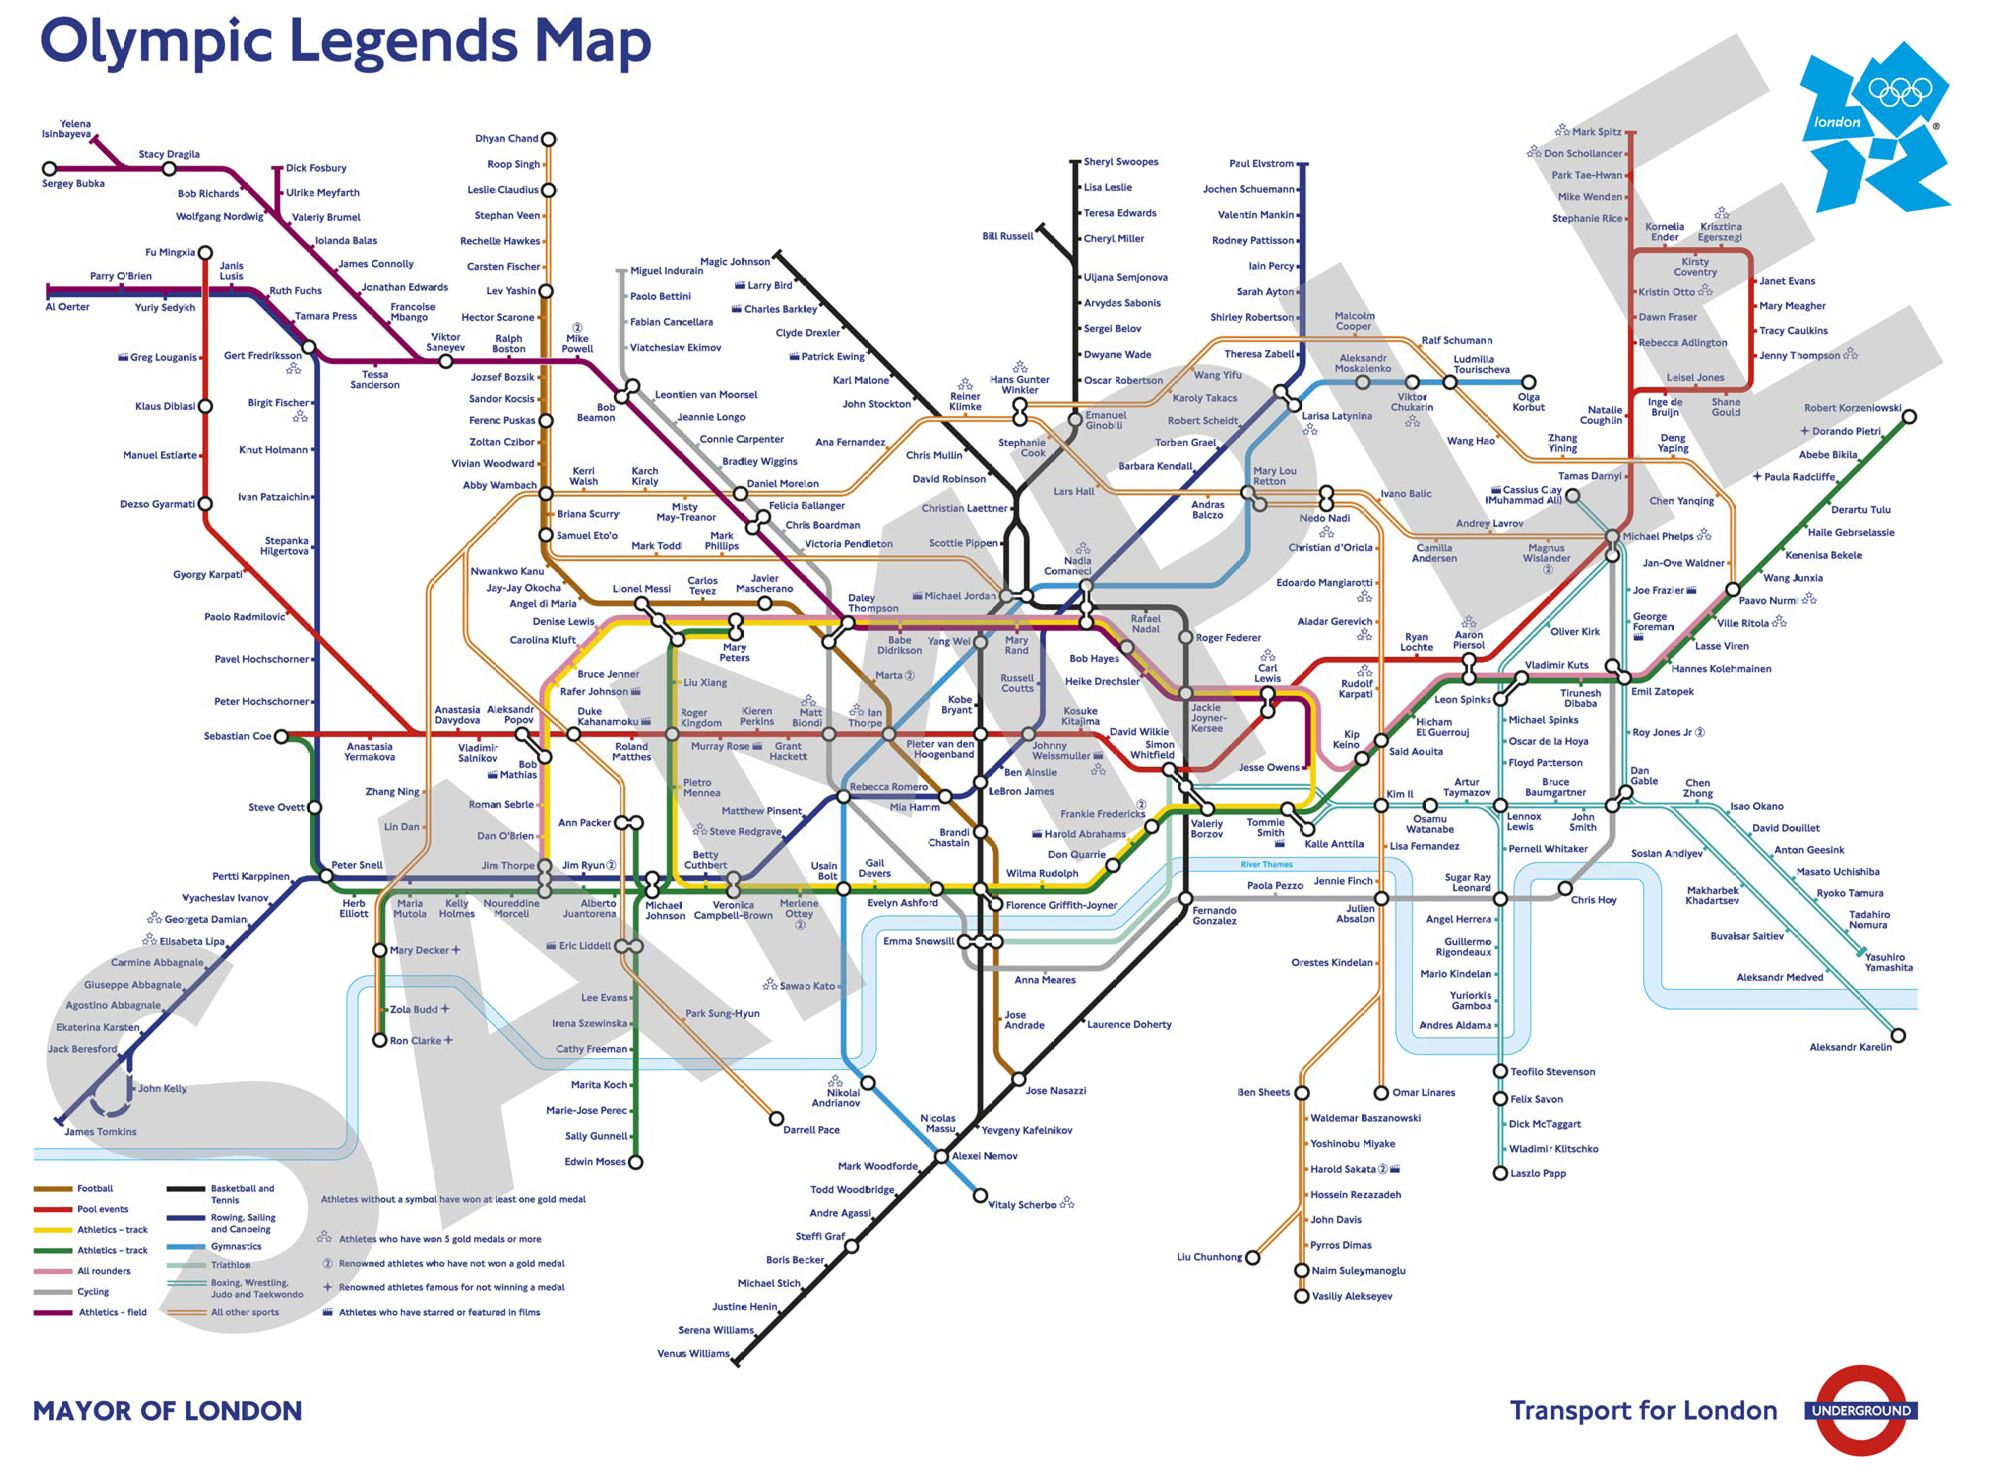 Transport For London Map.London Underground Olympic Legends Map Subway Map Underground